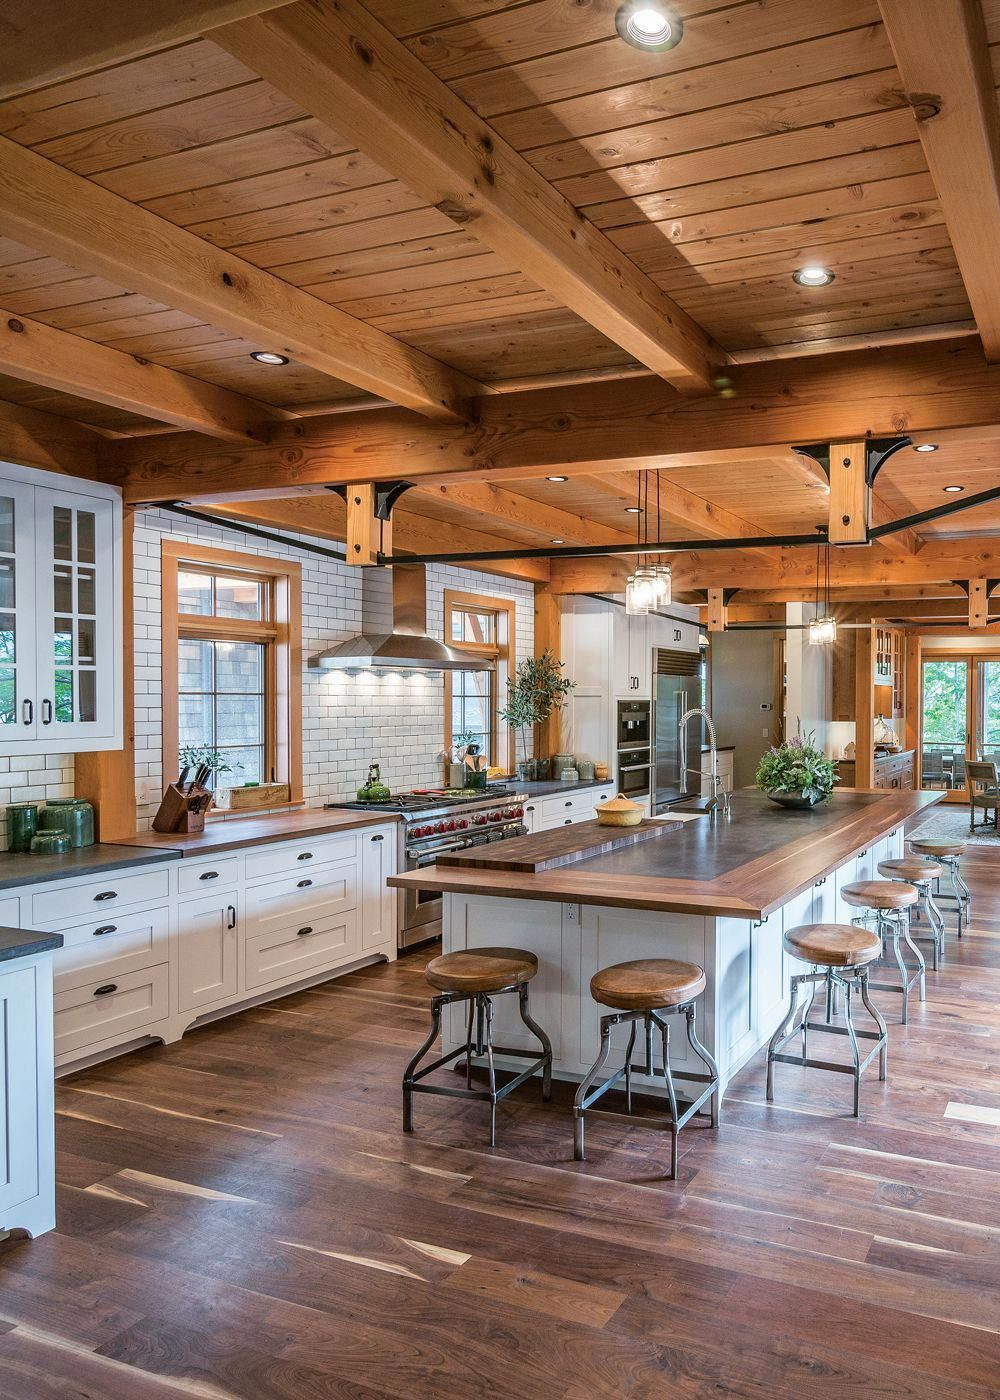 30 Most Popular Rustic Kitchen Ideas You'll Want to Copy images